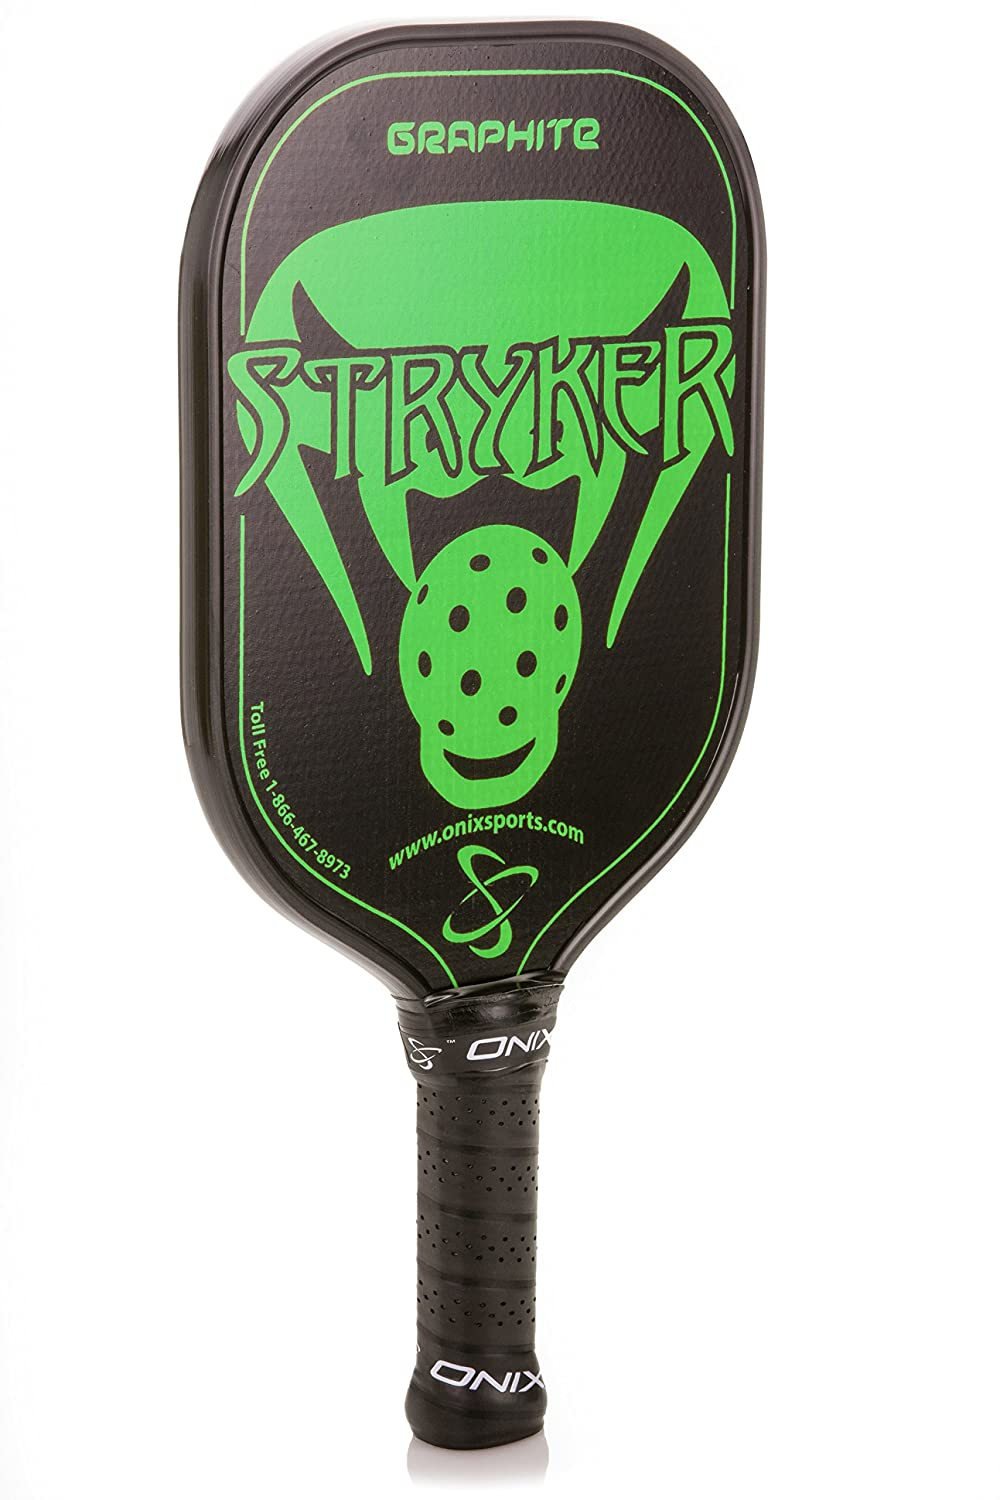 ONIX Graphite Stryker Pickleball Paddle, Unisex, KZ200-GRN, Verde: Amazon.es: Deportes y aire libre